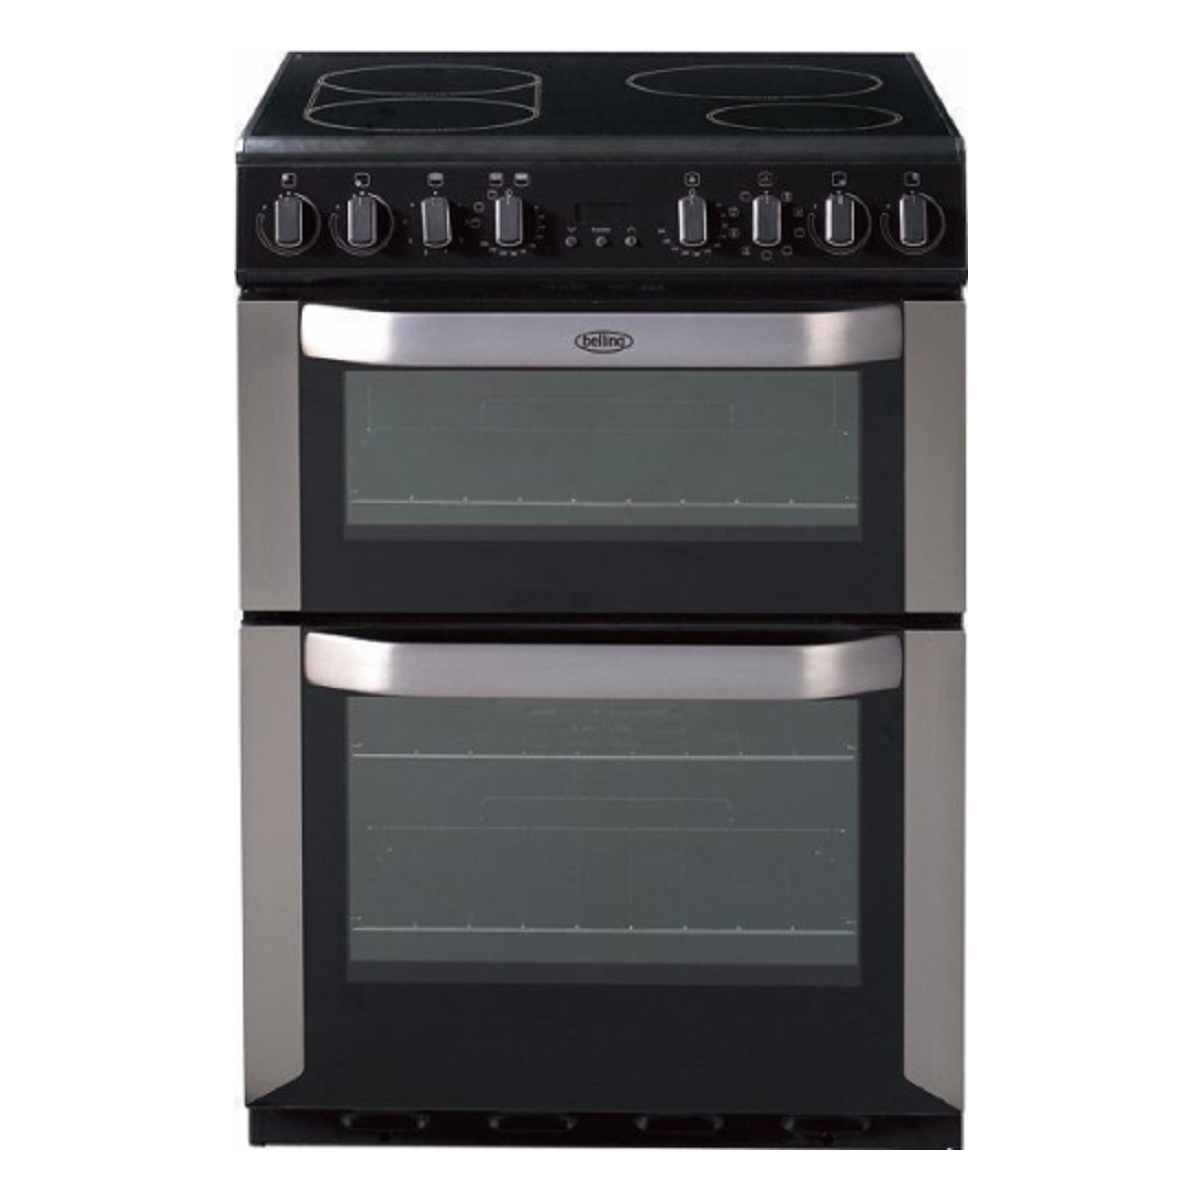 Belling FSE60IS 60cm Freestanding Electric Cooker with Double Oven